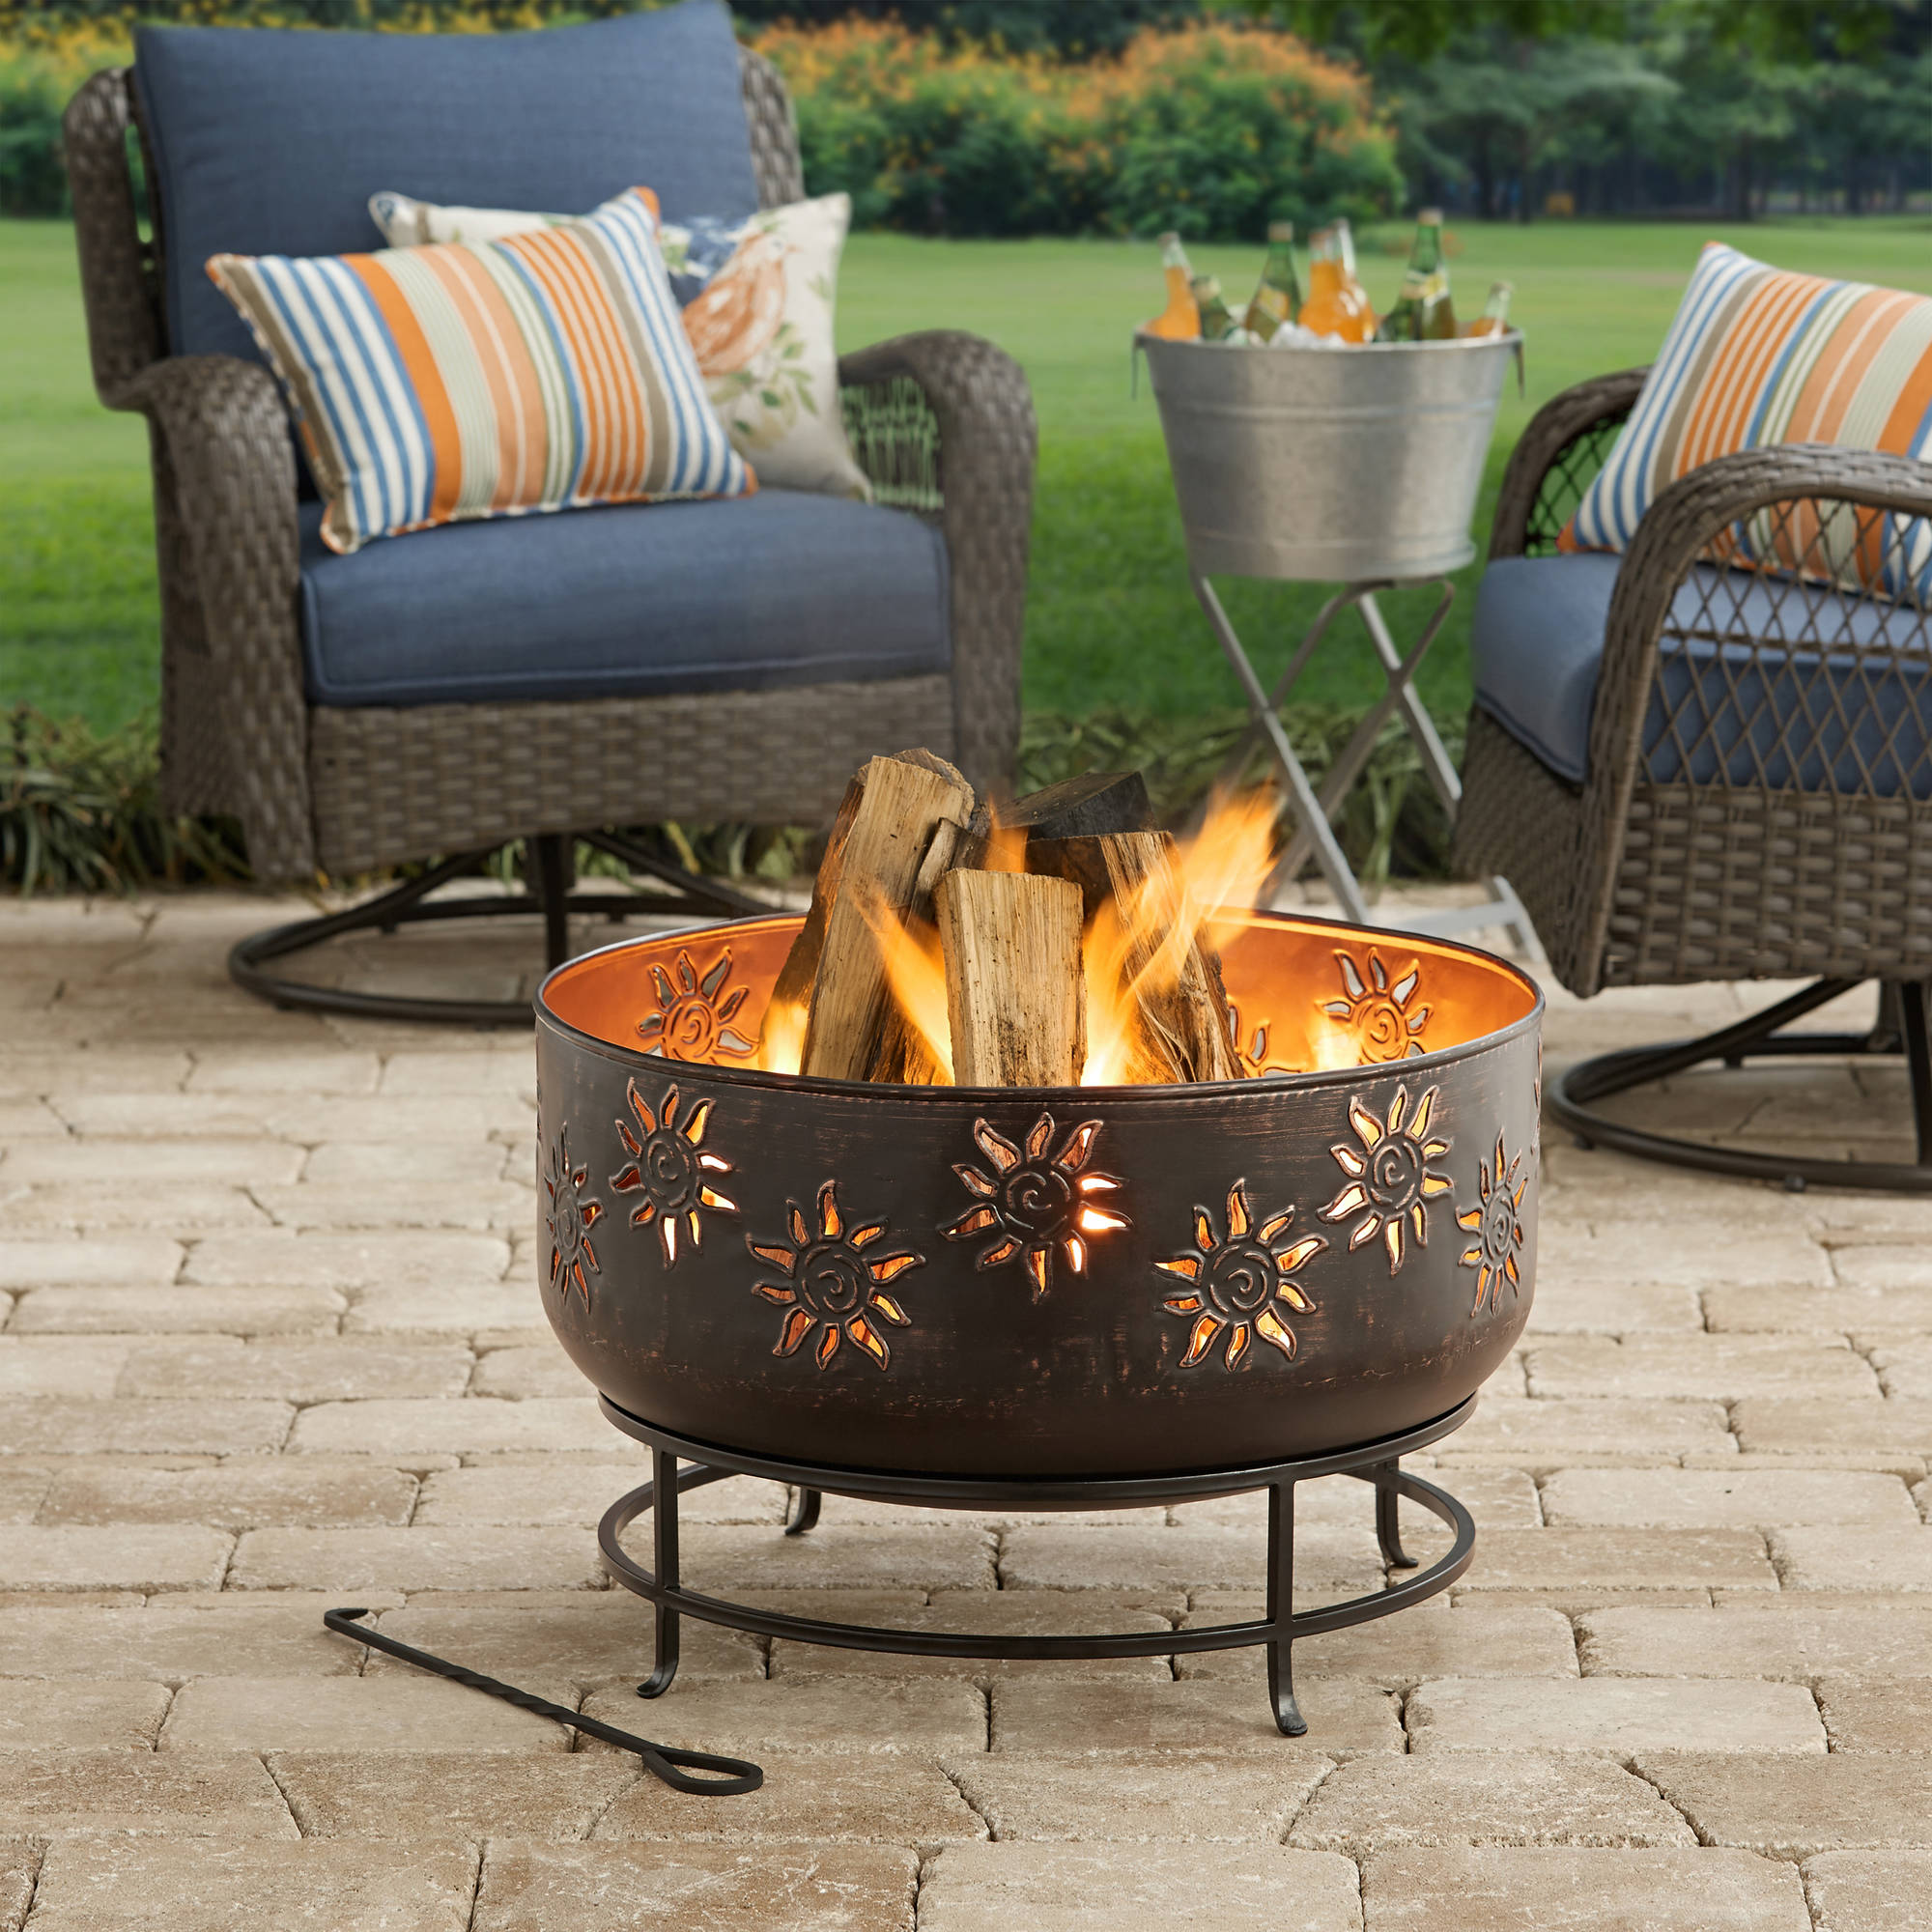 Better Homes and Gardens Sunburst Wood-Burning Fire Pit